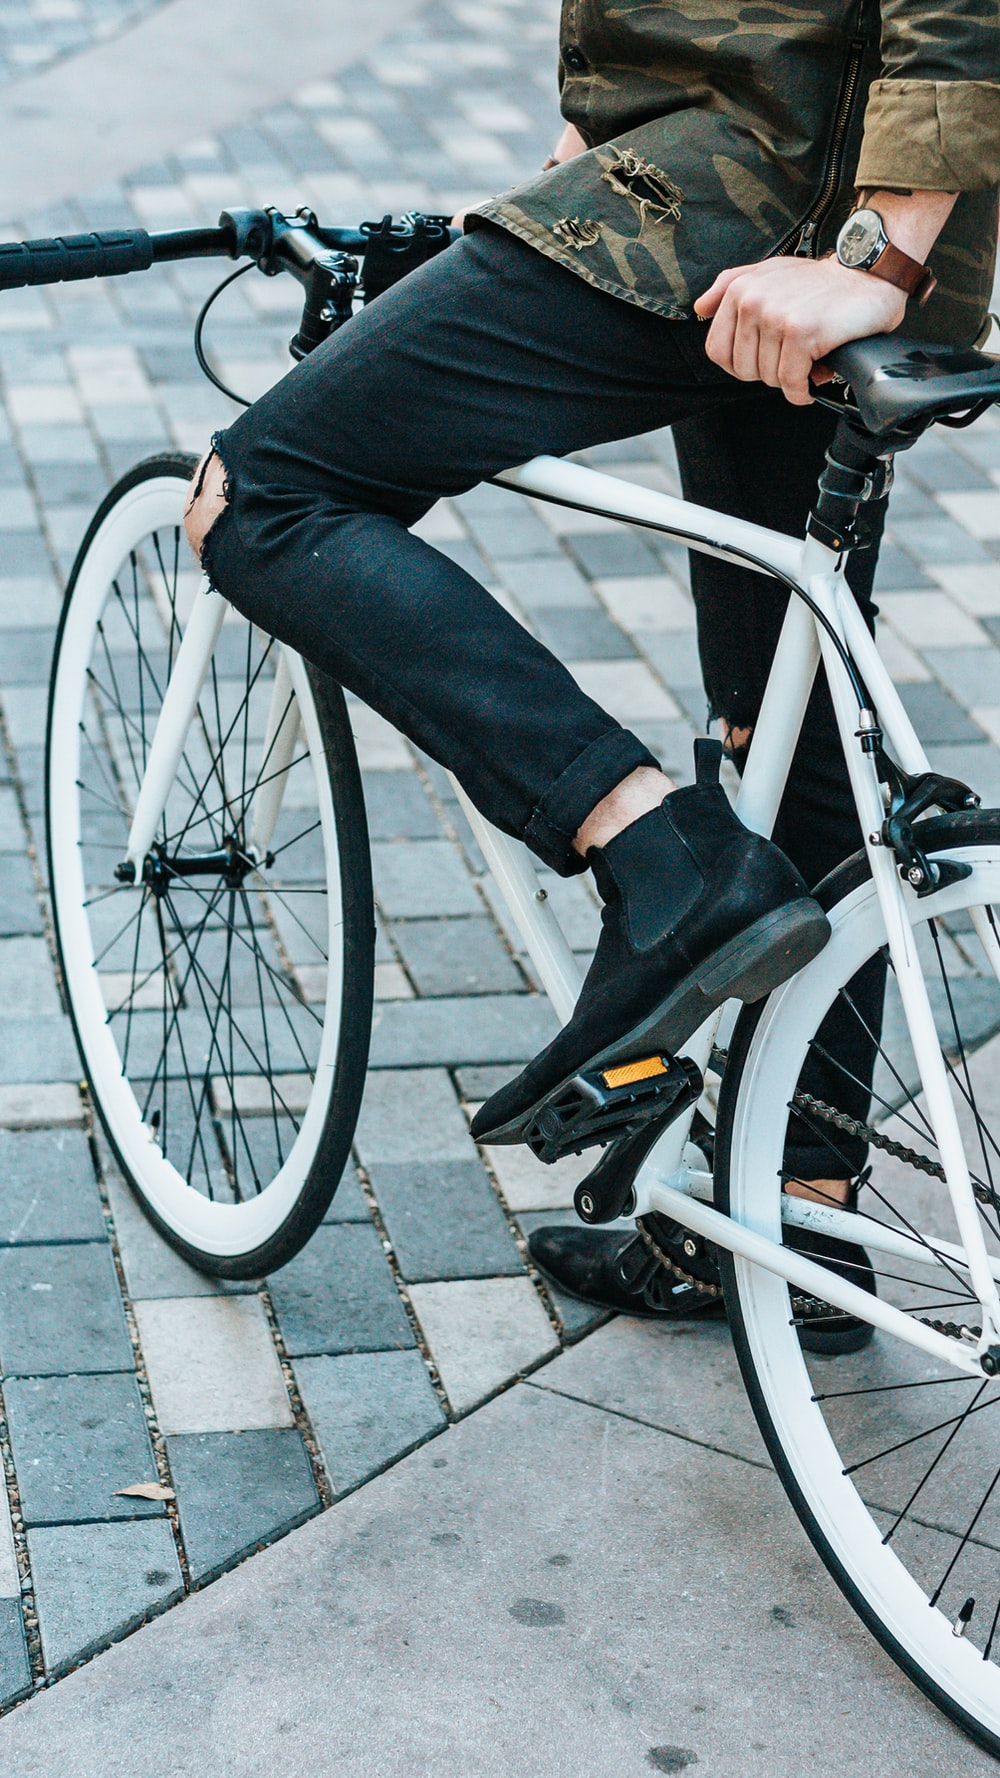 man wearing black pants riding white commuter bike